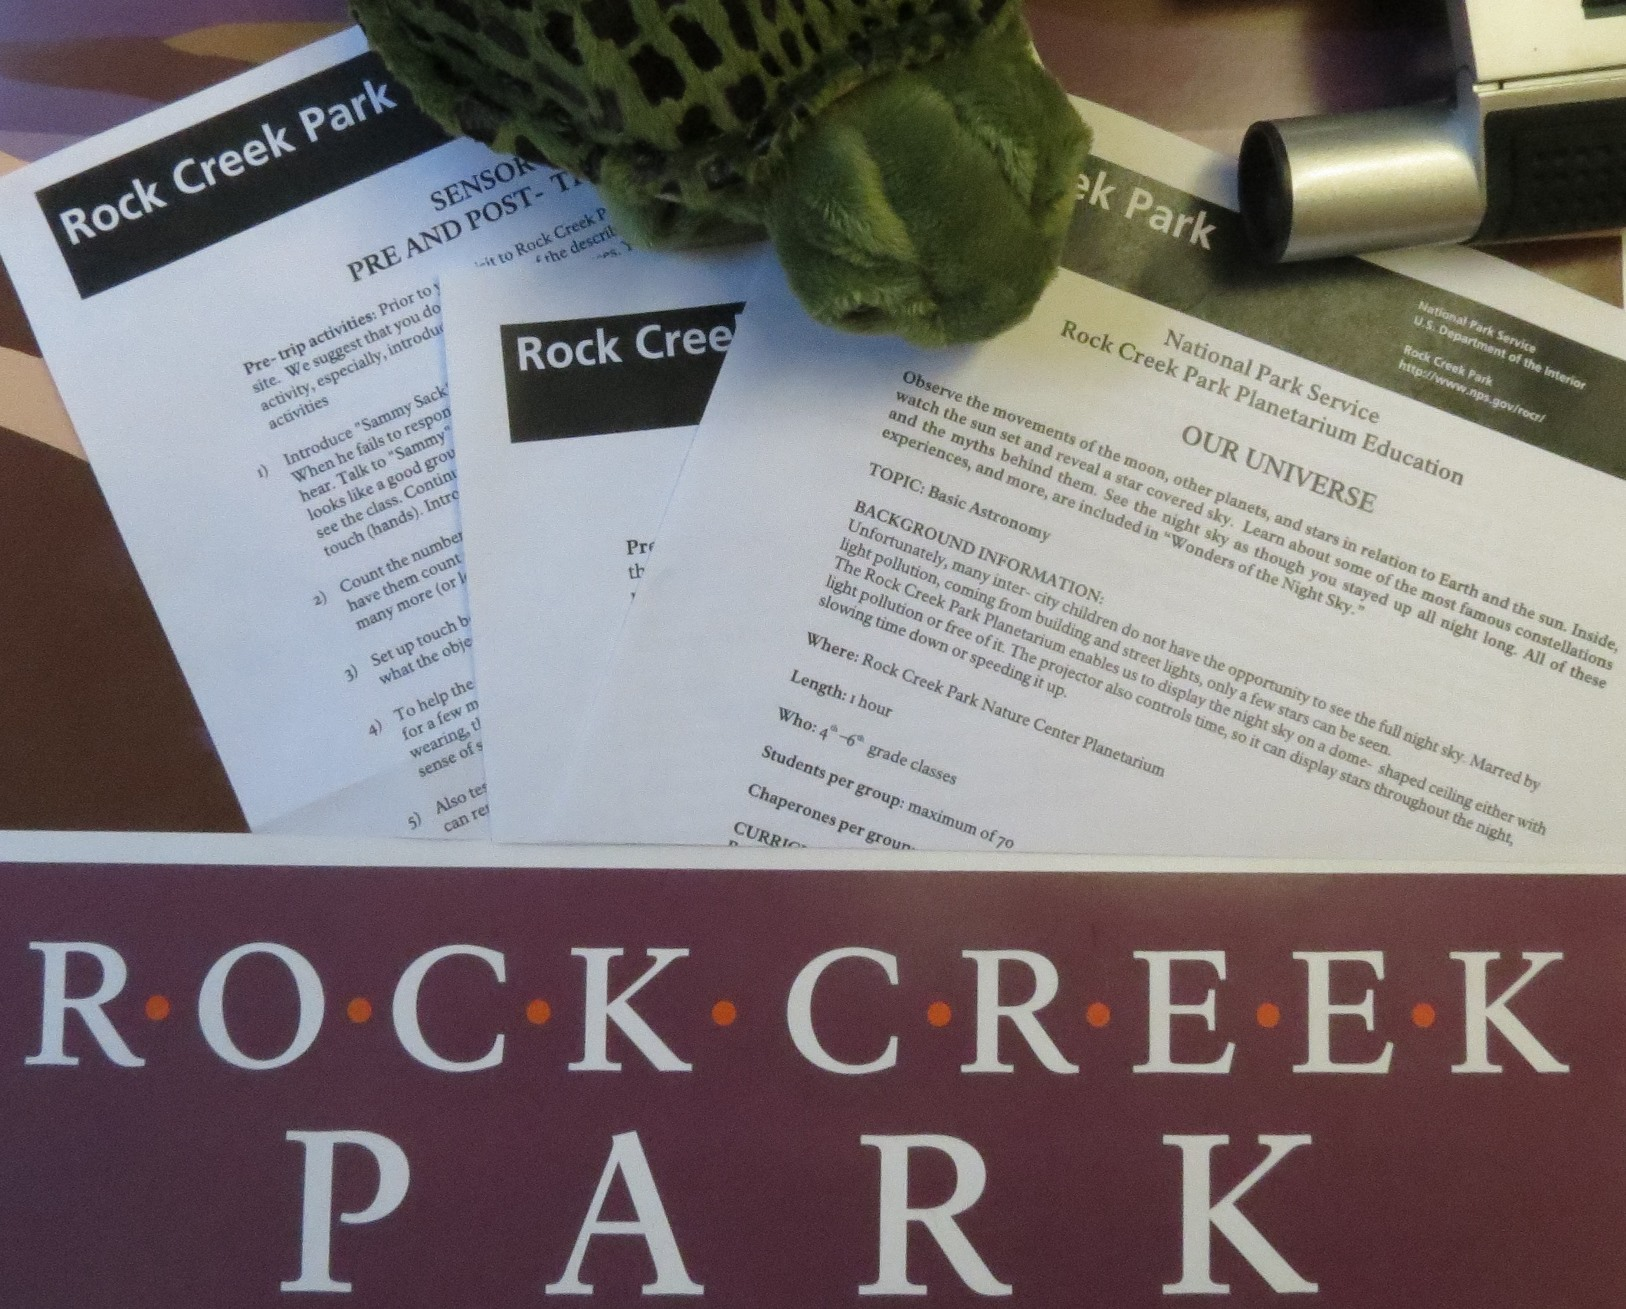 A turtle, lesson plans and Rock Creek Park logo spread on a table